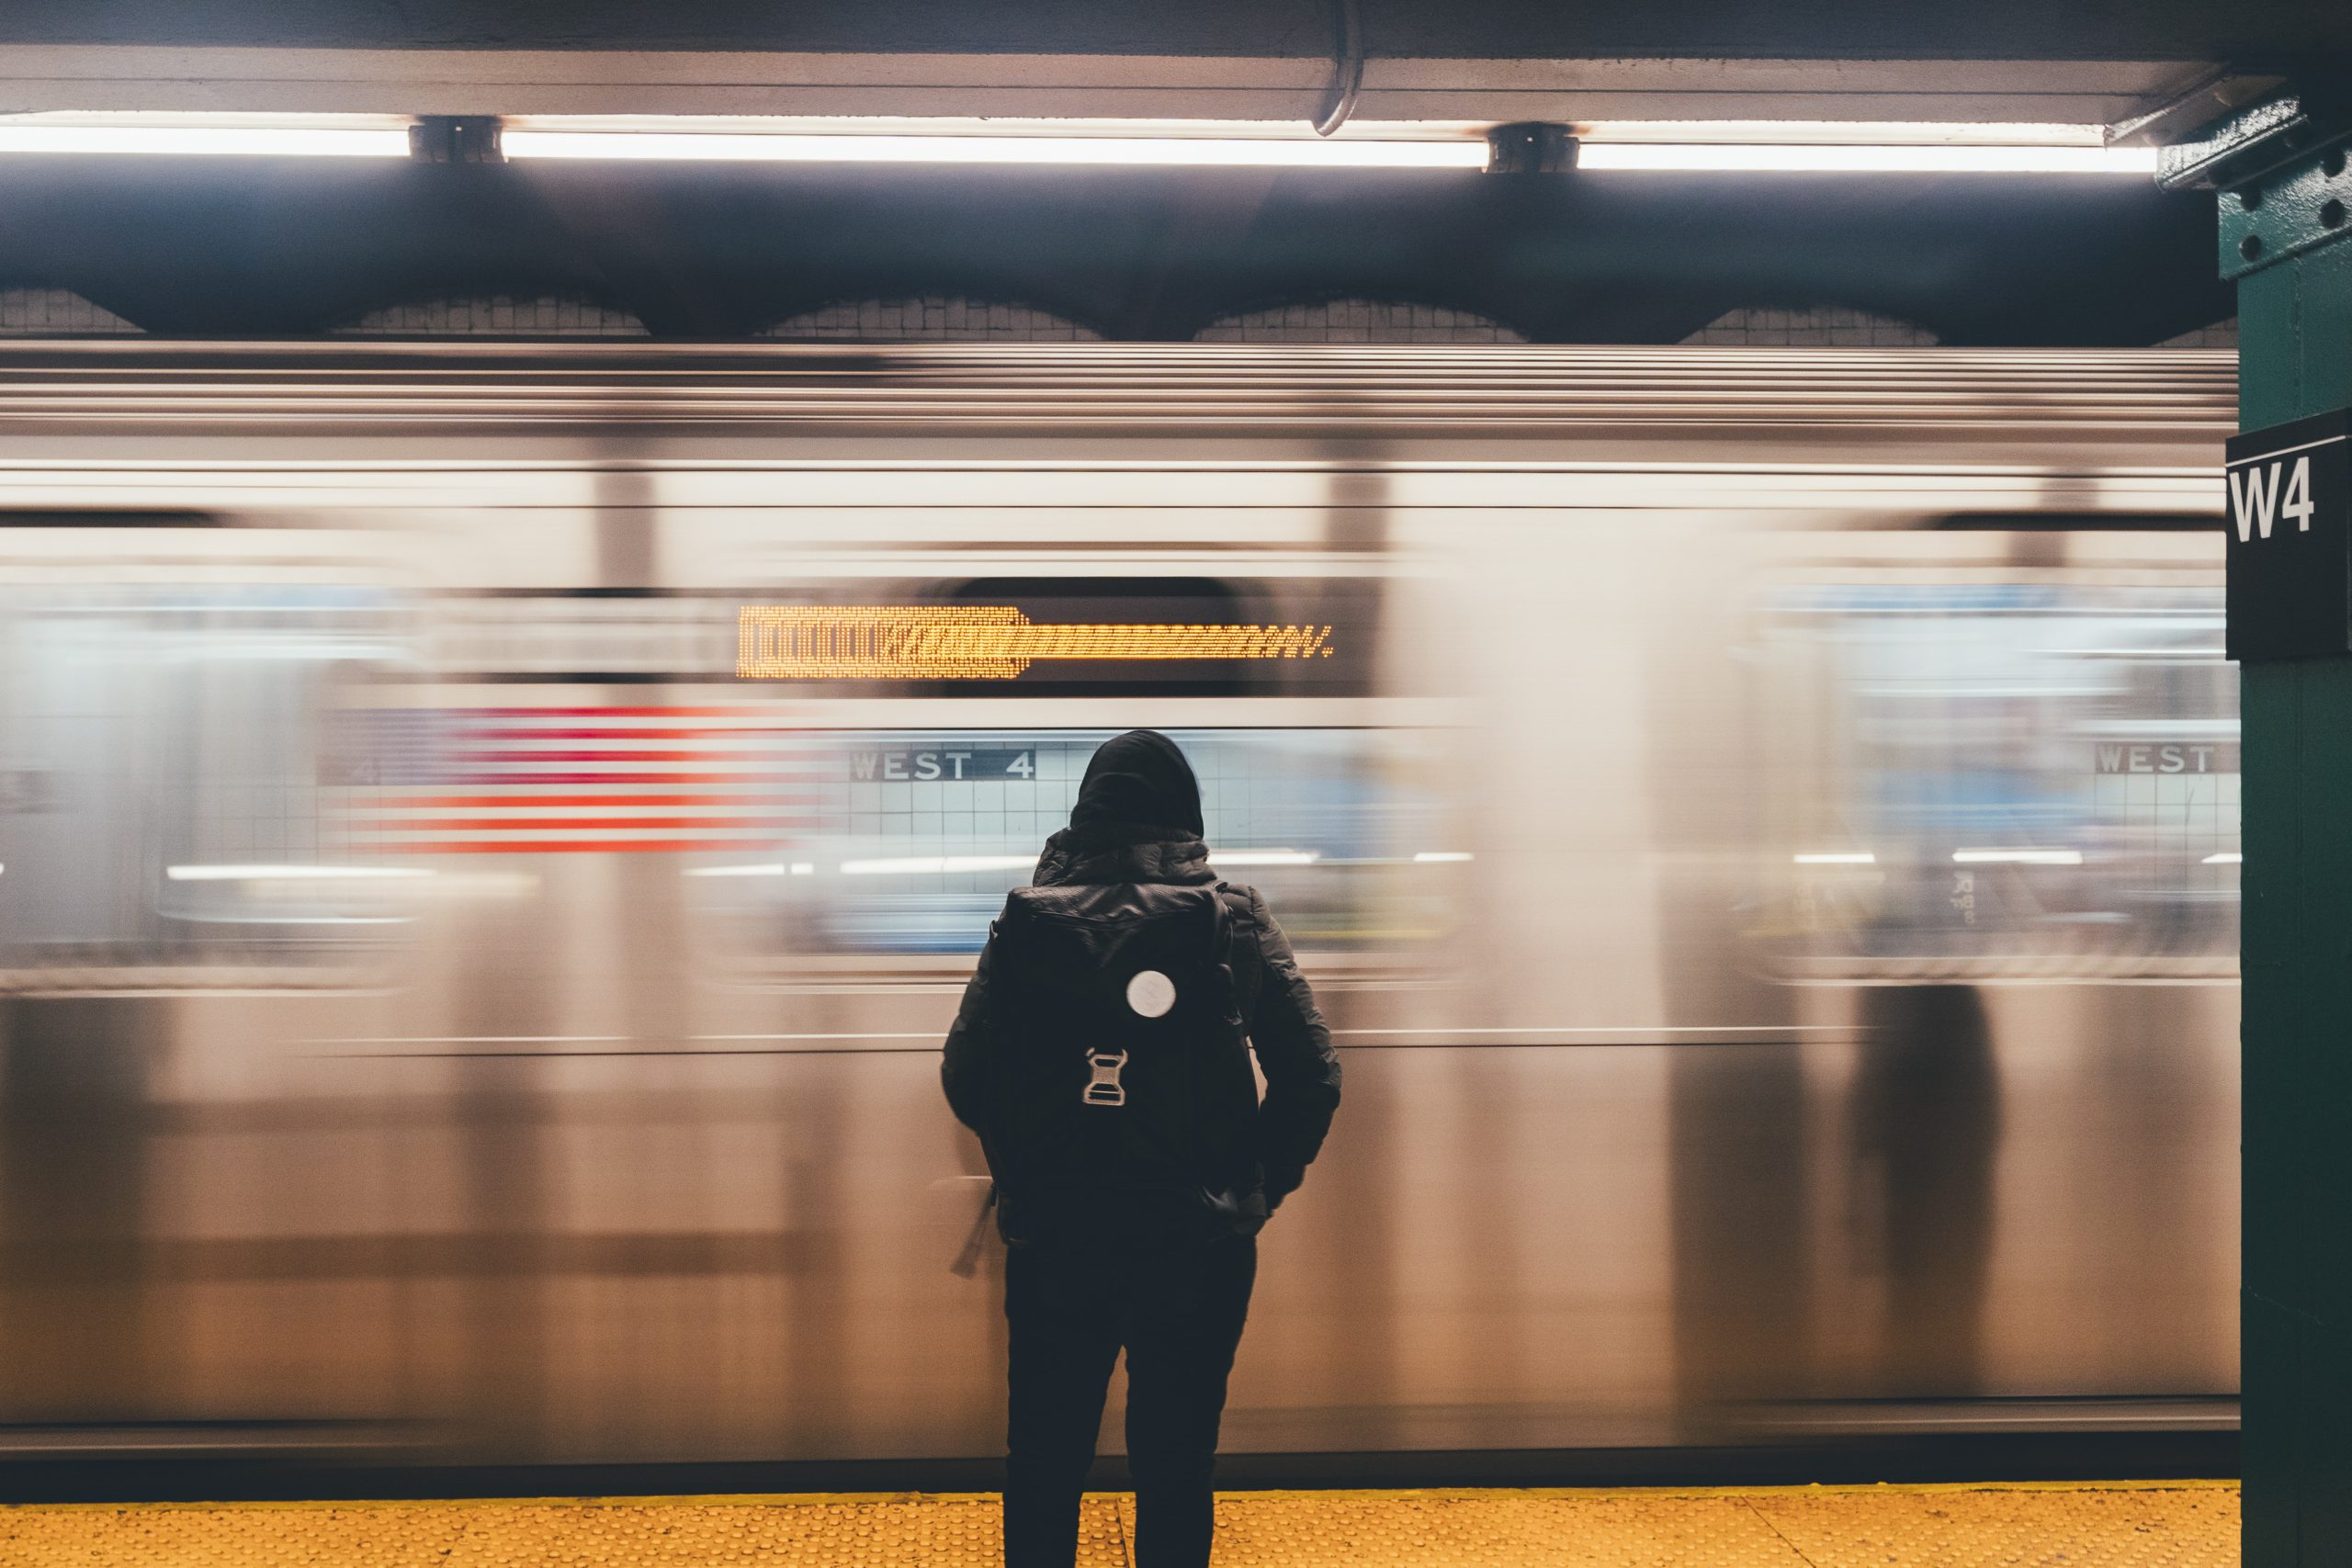 Get on the Startup Train: Equity Crowdfunding Opens Investment World To All